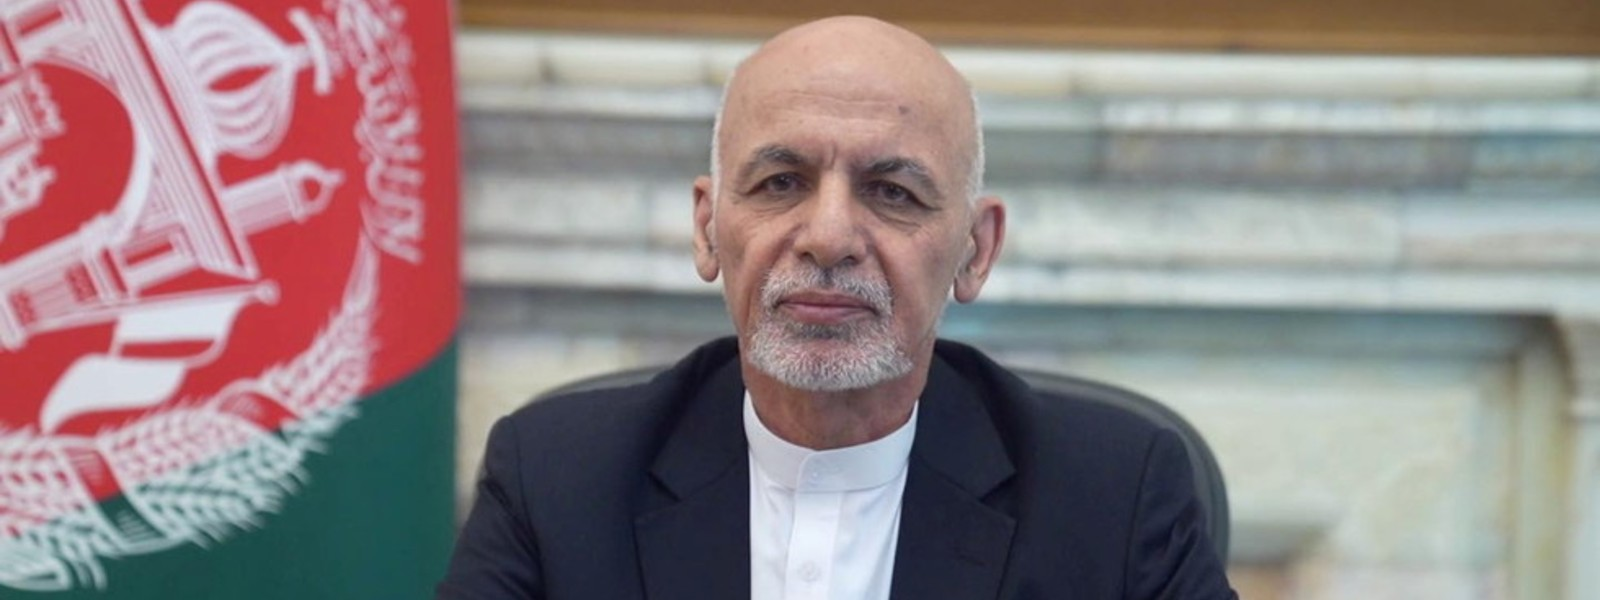 Afghan president fled Kabul with cars full of cash